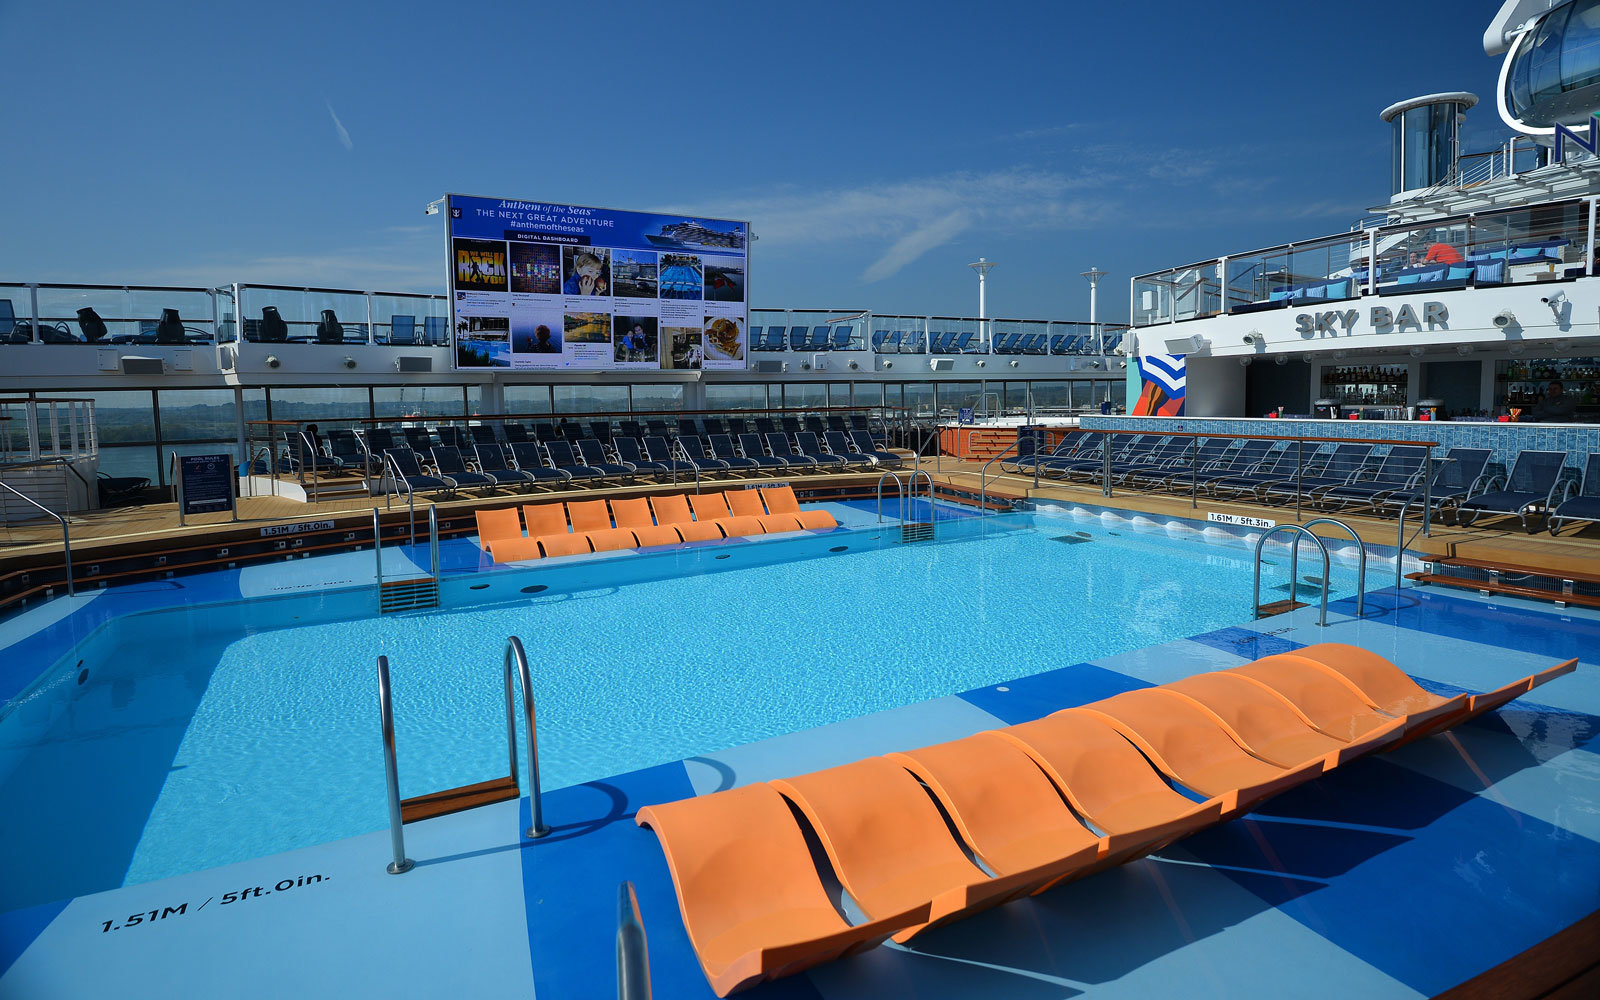 Royal Caribbean is adding lifeguards to its pools.